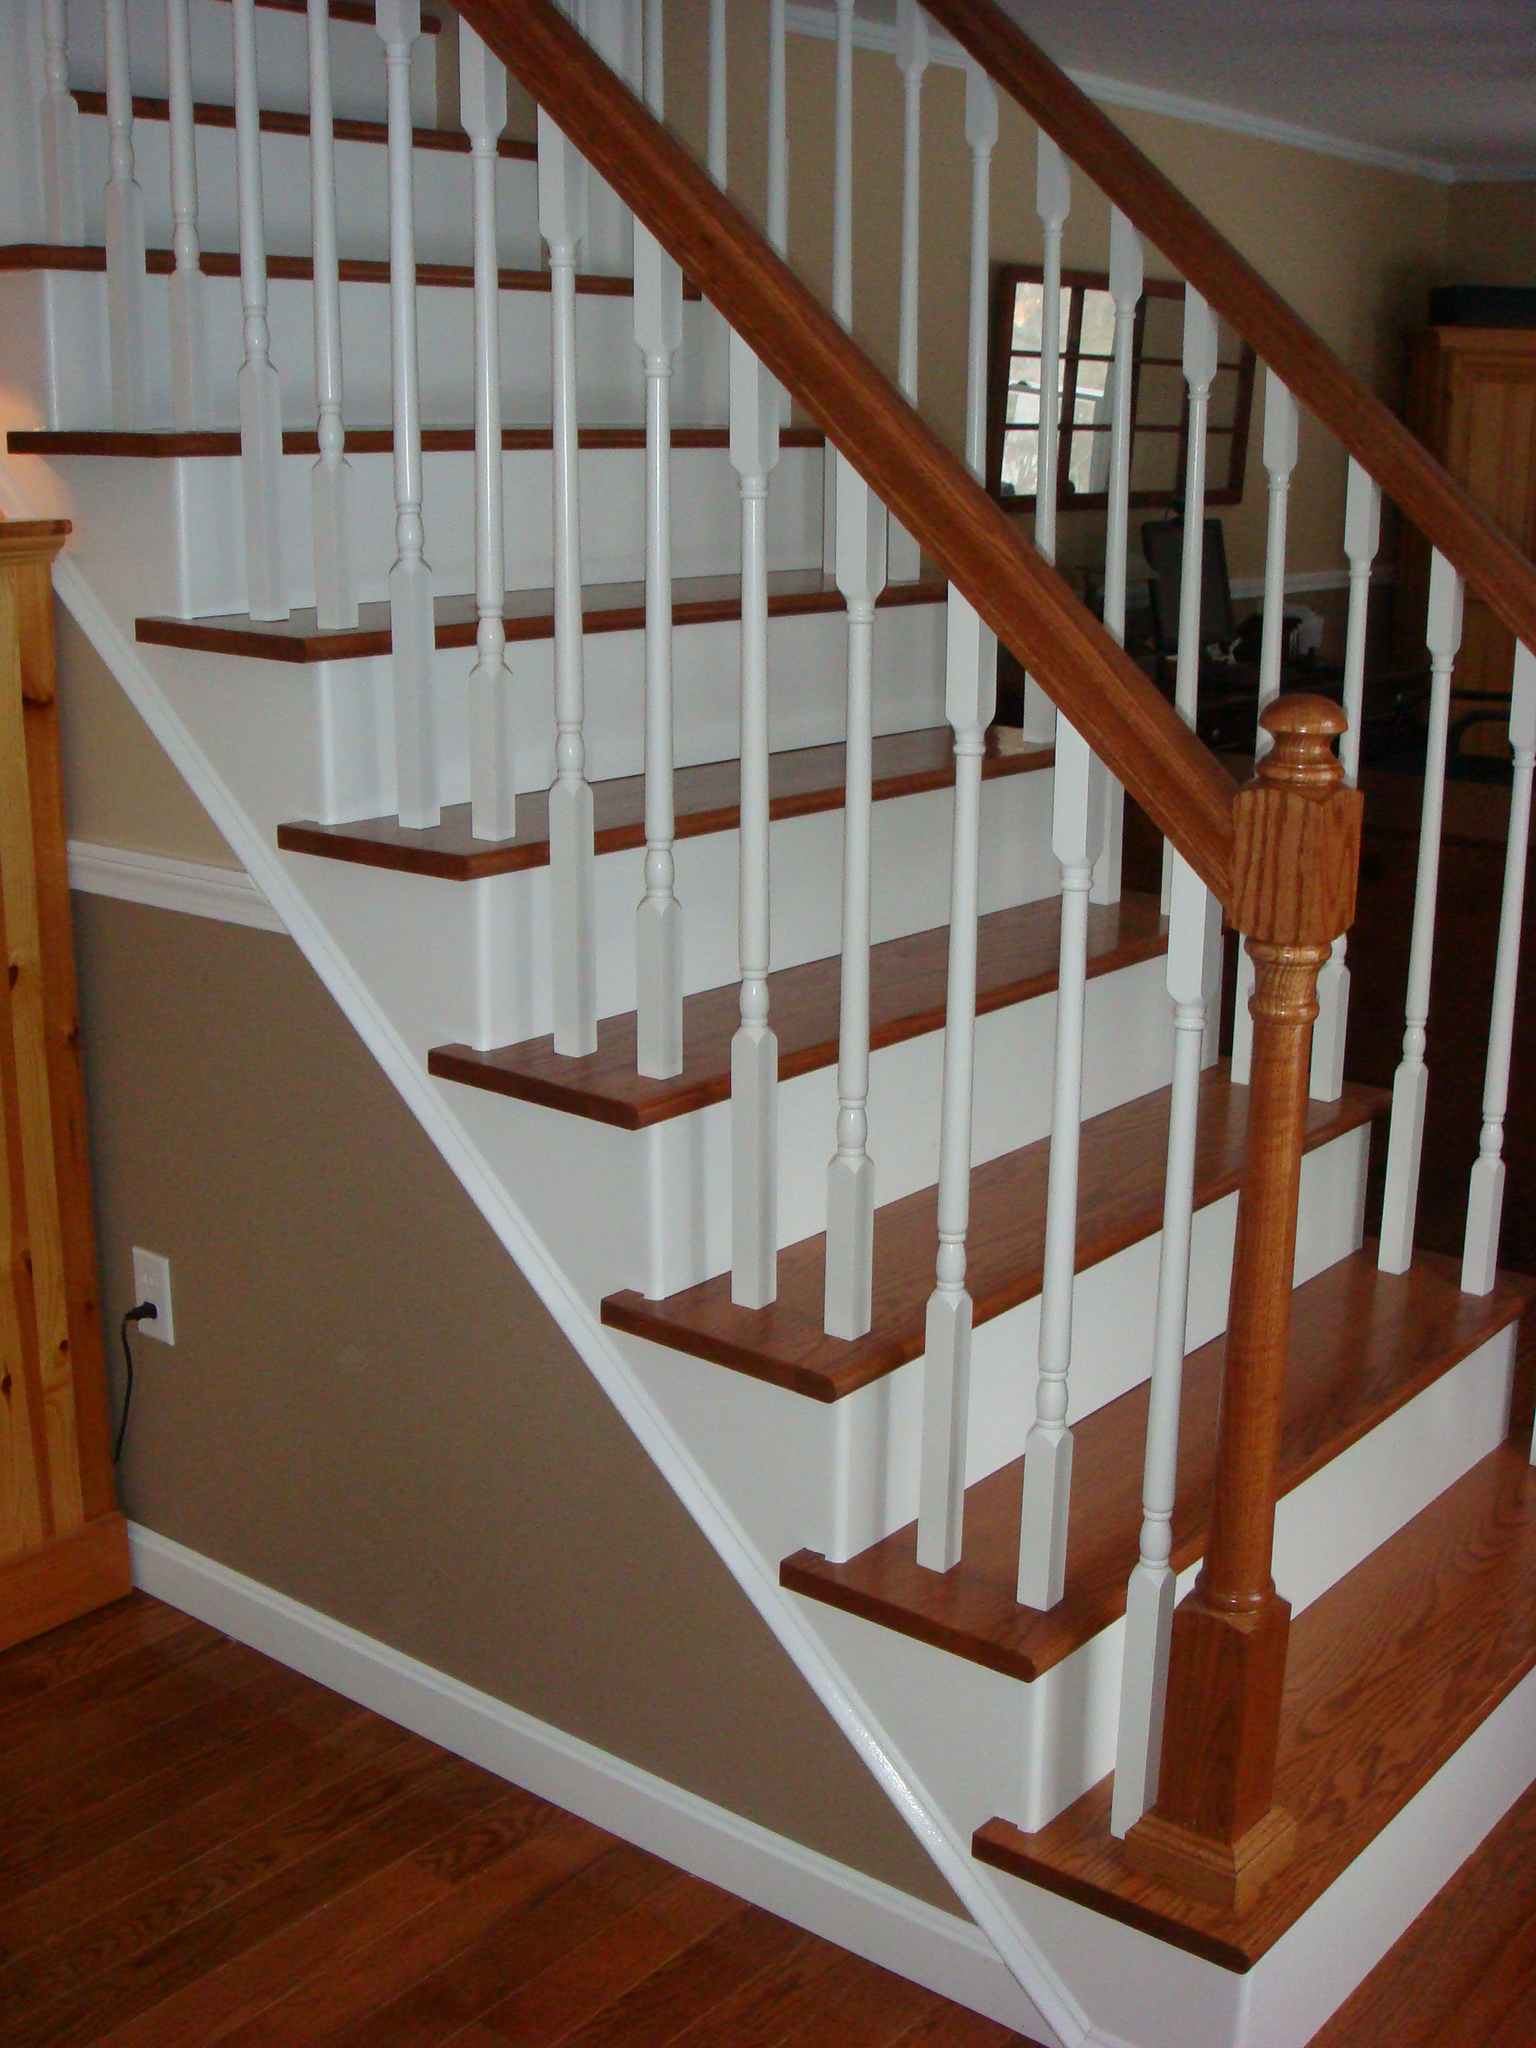 remodelaholic from carpet to wooden stair treads guest remodel. Black Bedroom Furniture Sets. Home Design Ideas